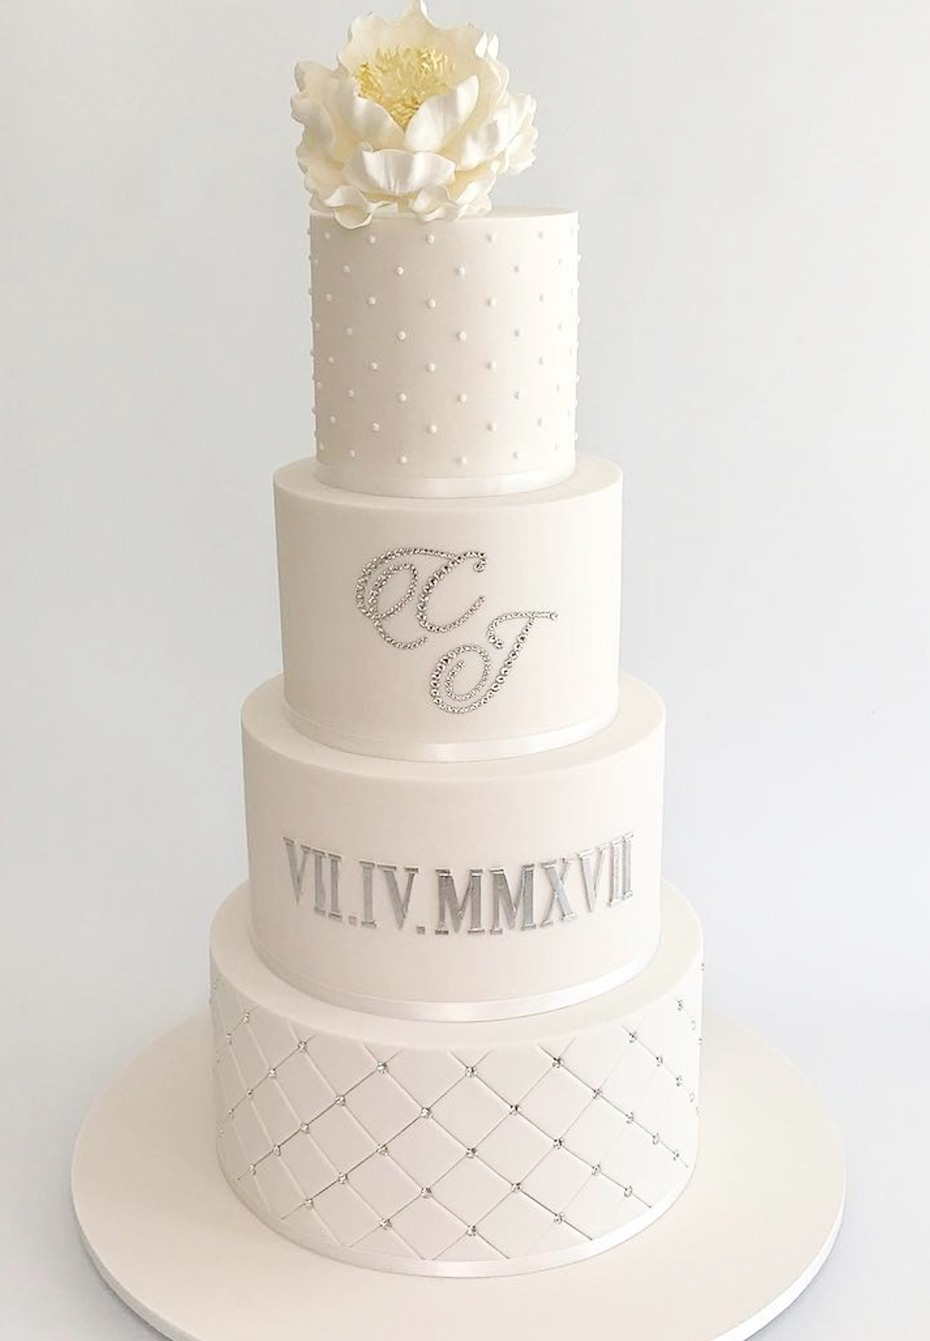 white and silver wedding cake with wedding date in roman numerals